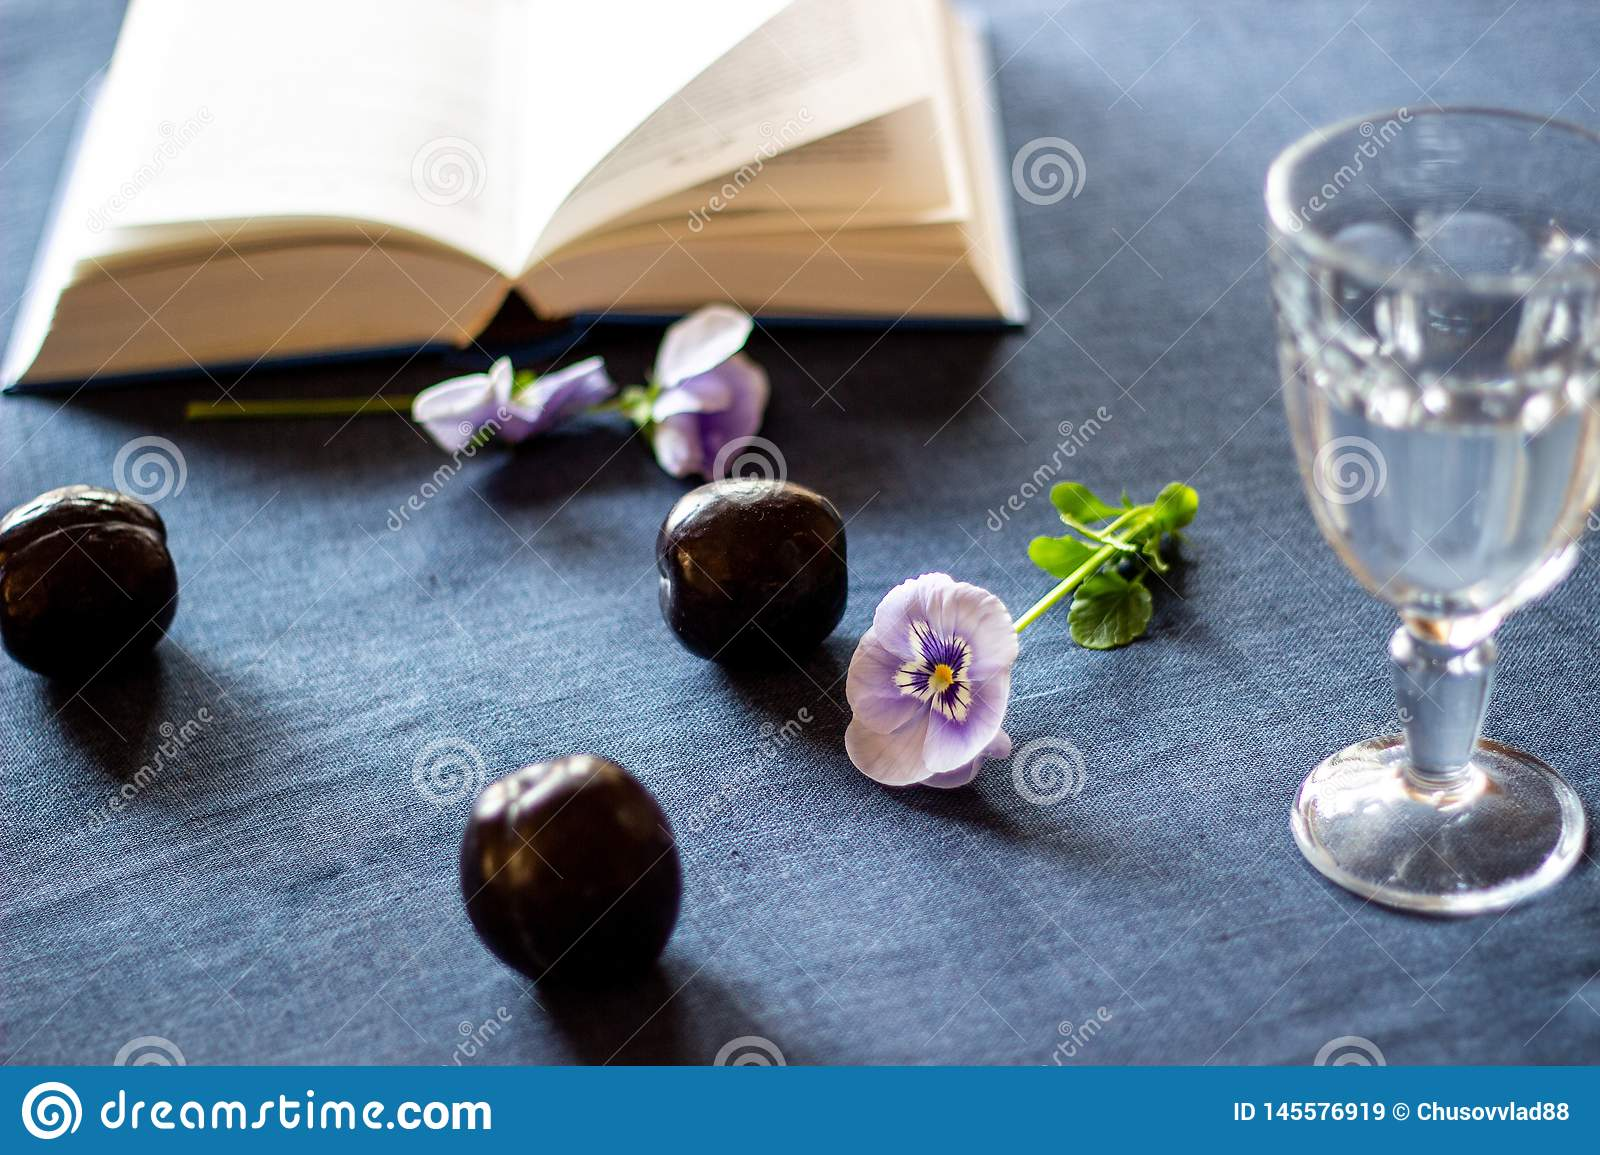 Plums, flowers, a book and a glass of water on a blue background